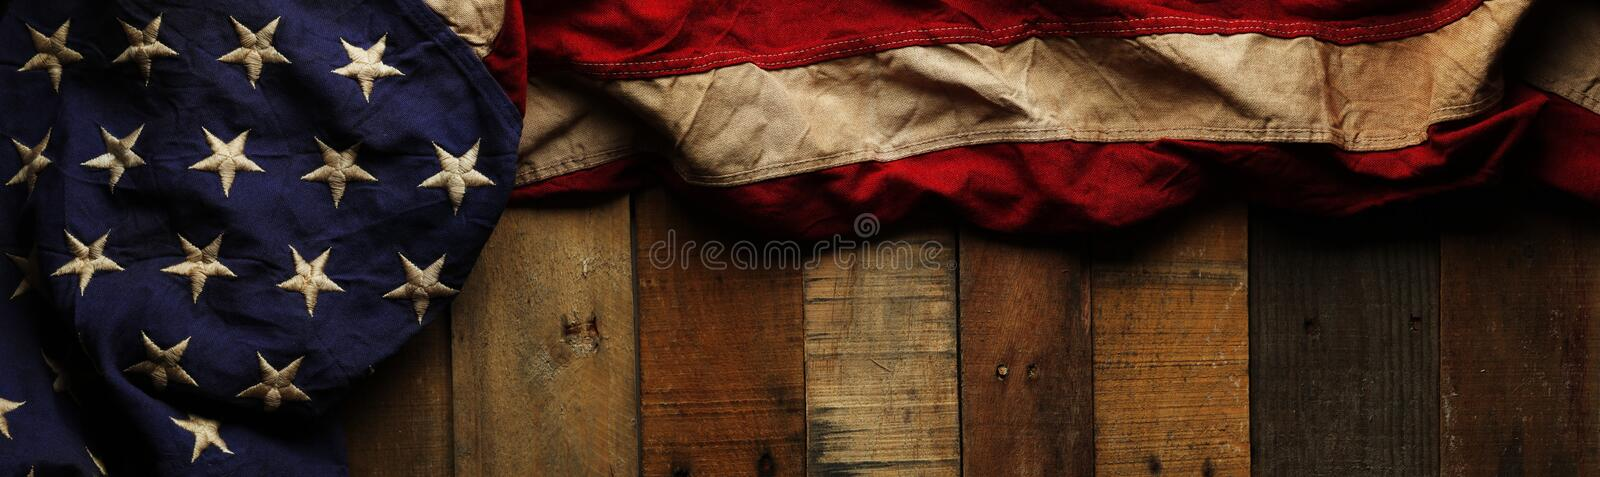 Vintage red, white, and blue American flag for Memorial day royalty free stock images